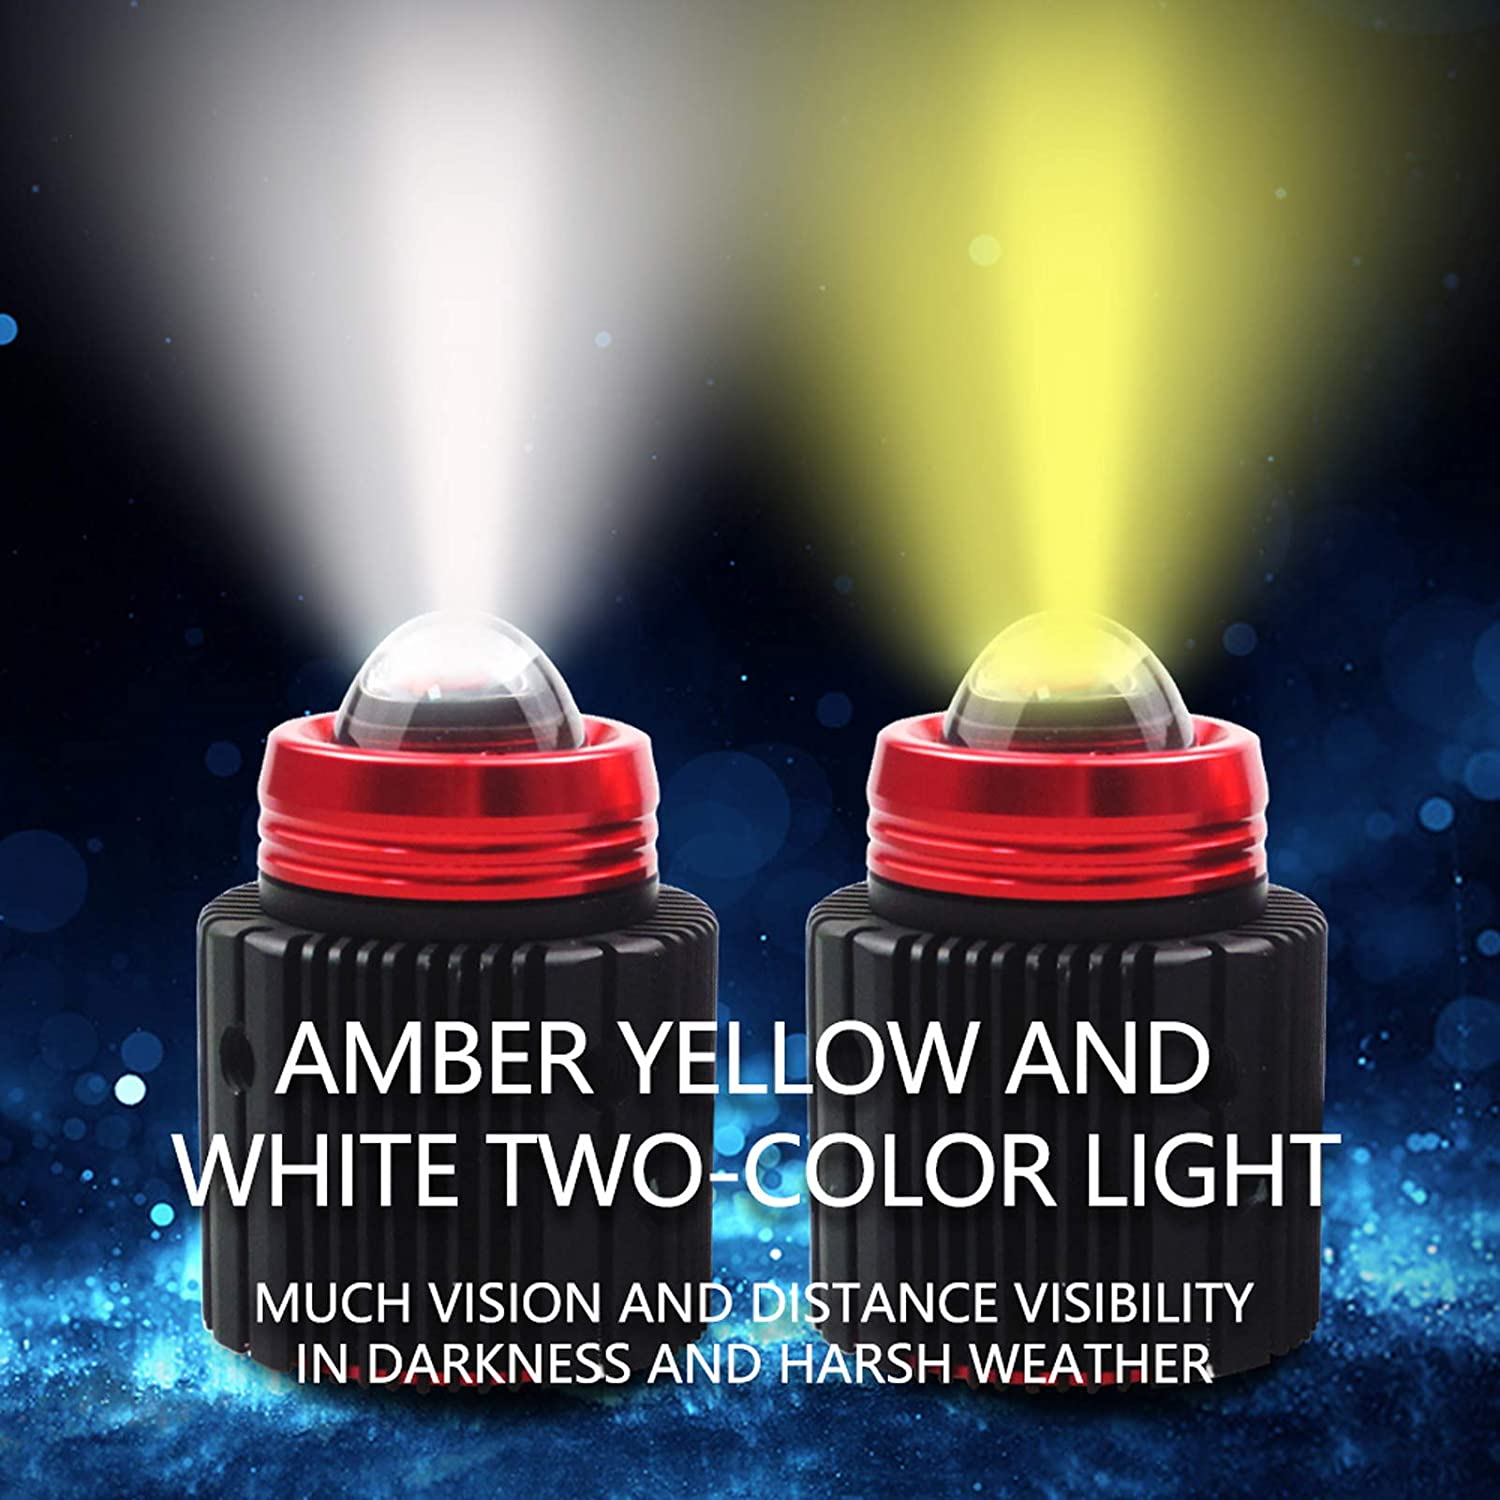 15W 3000 Lumens Super Bright LED Headlights Conversion Kit Dual Color 6500K White 3800K Yellow IP68 Waterproof for Automobile 2 Pack LED Headlight Bulbs